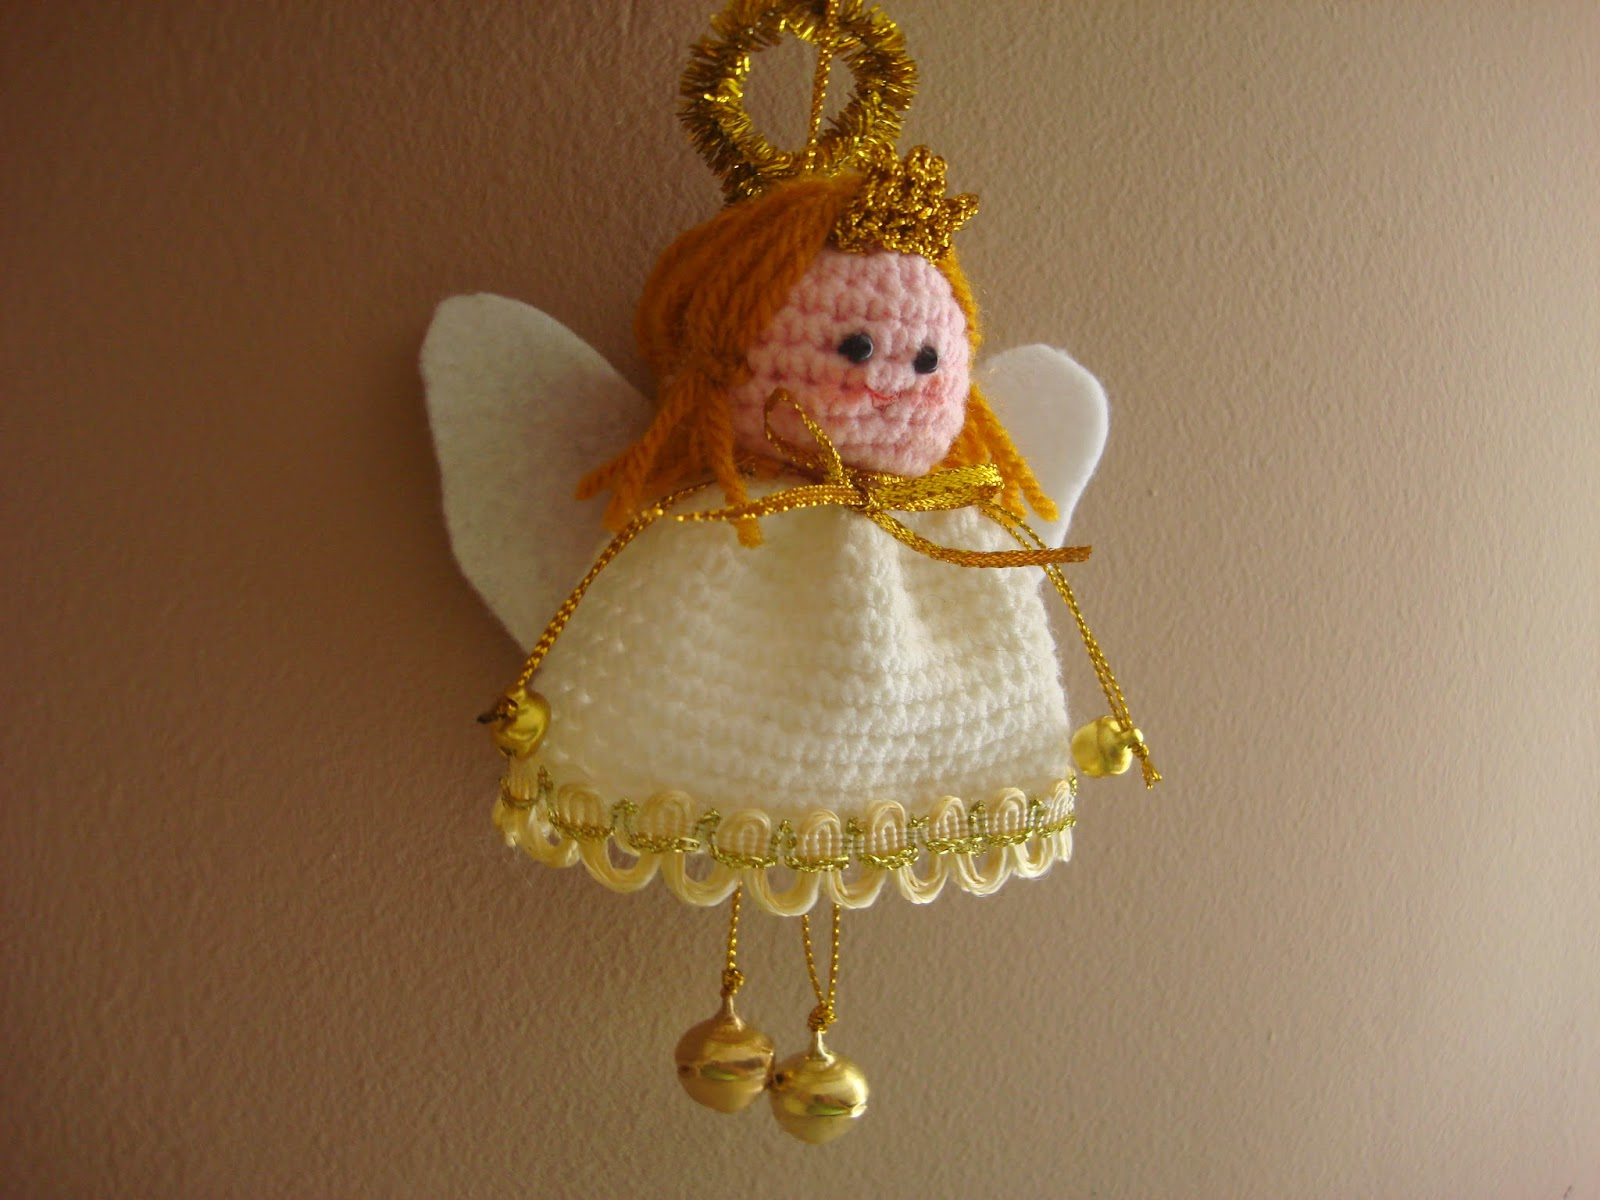 Angel Amigurumi Patron Gratis : Crochet Angel Related Keywords & Suggestions - Crochet ...